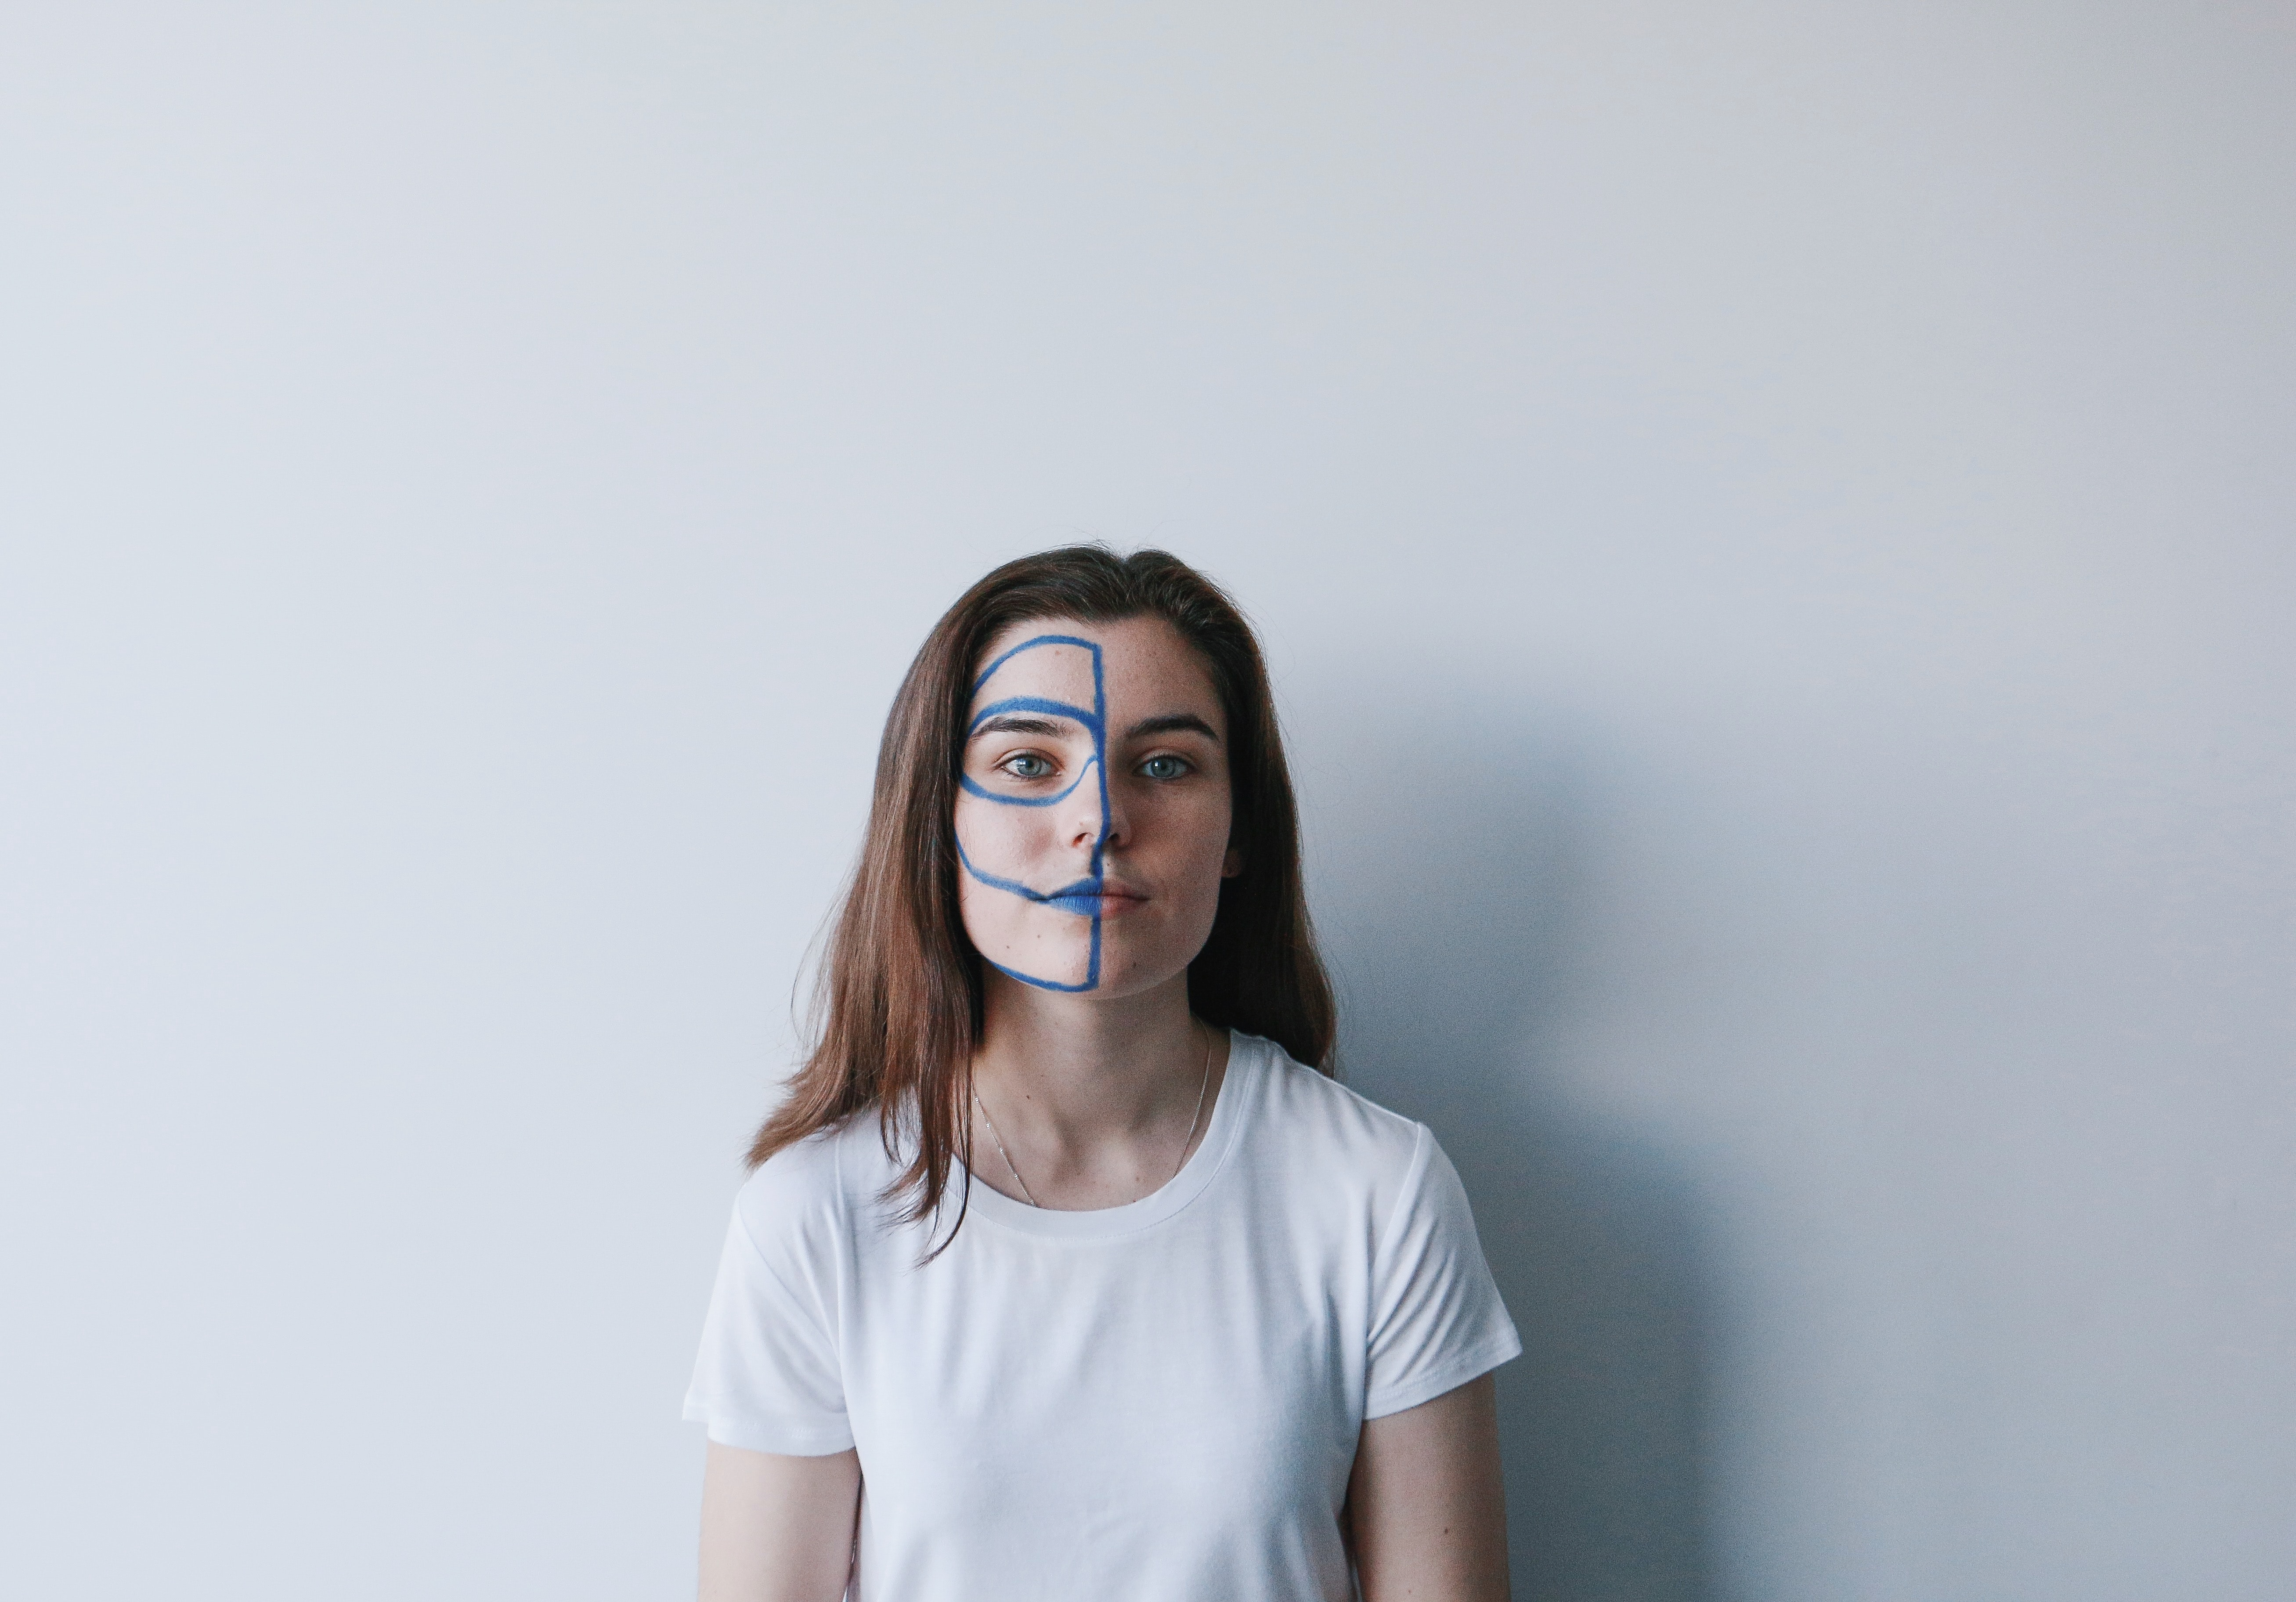 woman wearing white crew-neck t-shirt with mask on face leaning on wall